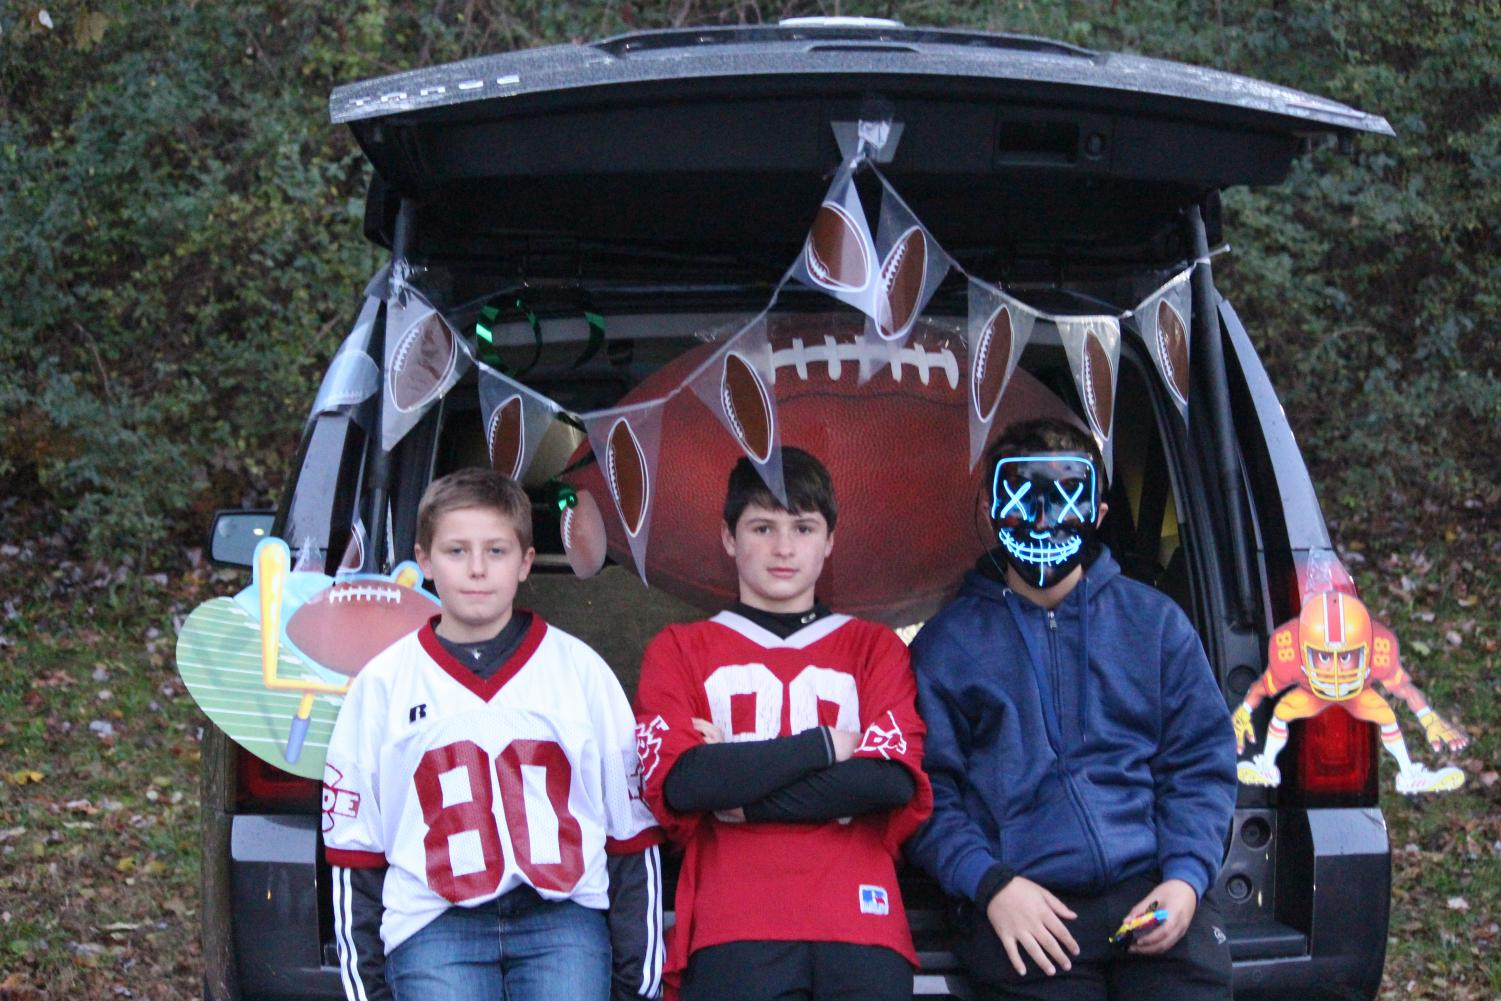 """Henry Mohl (middle) stands at his football themed vehicle. He said, """"This event is pretty cool and it's safer than normal trick-or-treating."""""""